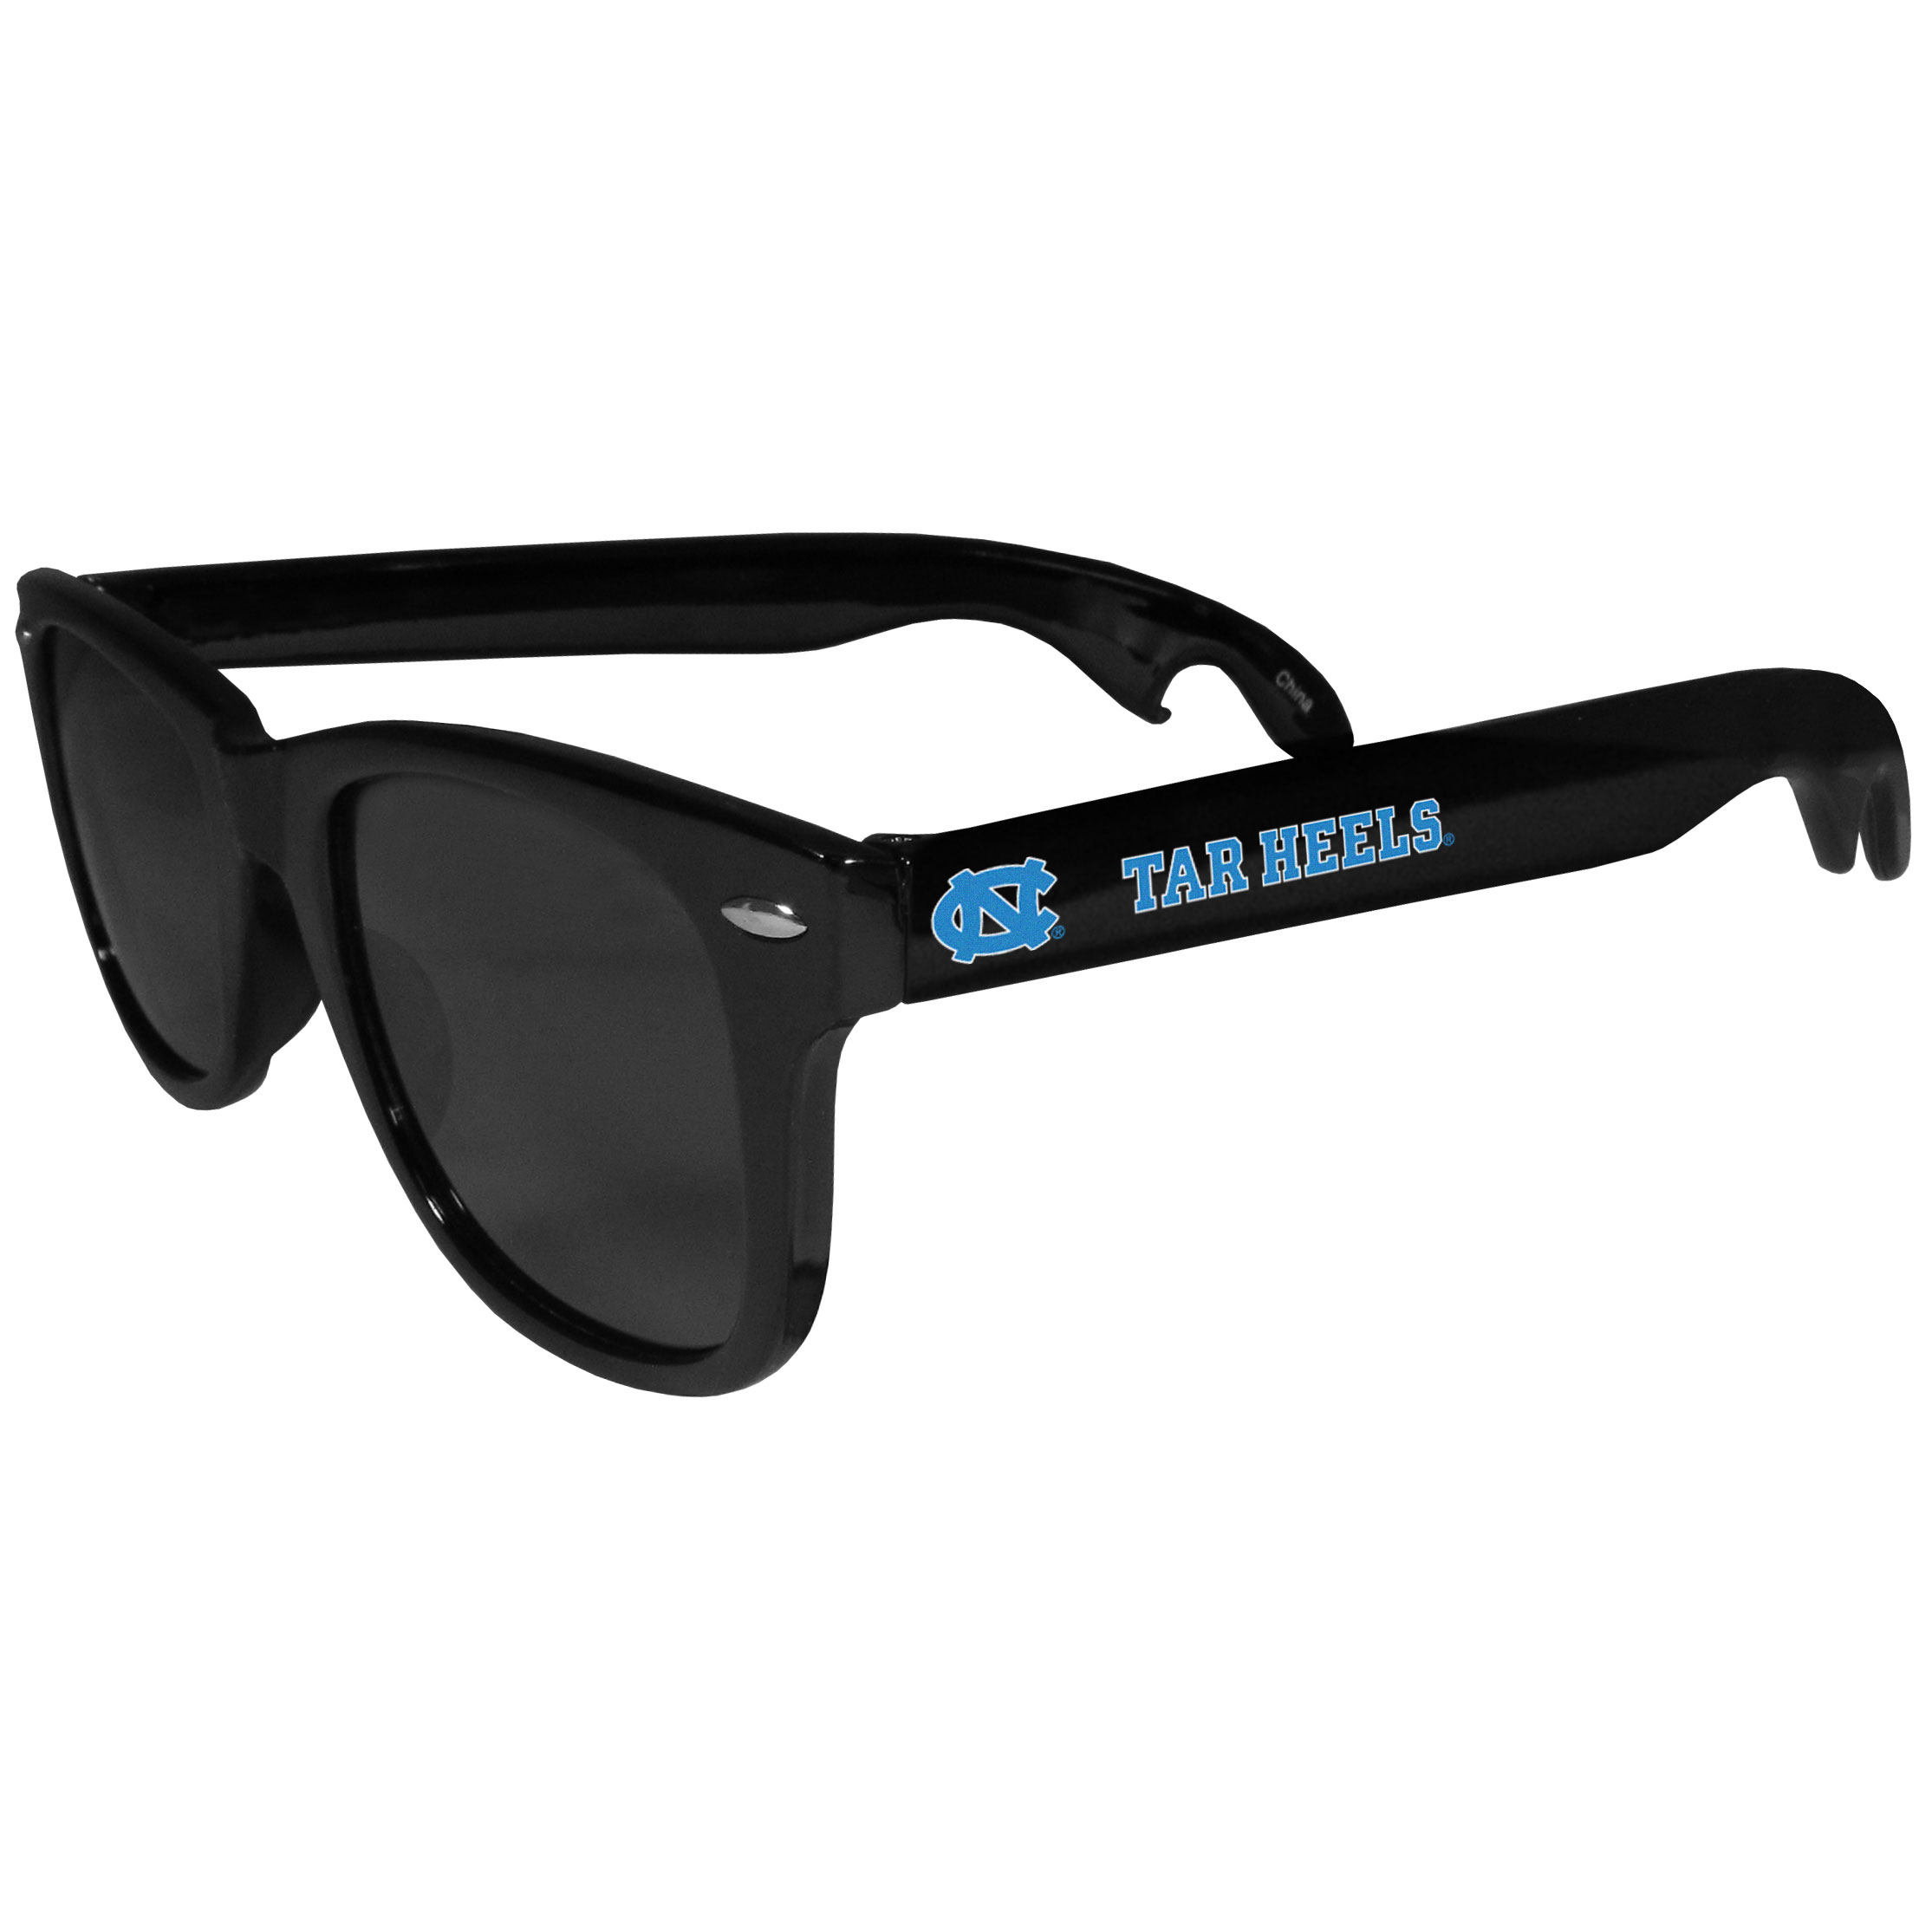 N. Carolina Tar Heels Beachfarer Bottle Opener Sunglasses - Seriously, these sunglasses open bottles! Keep the party going with these amazing N. Carolina Tar Heels bottle opener sunglasses. The stylish retro frames feature team designs on the arms and functional bottle openers on the end of the arms. Whether you are at the beach or having a backyard BBQ on game day, these shades will keep your eyes protected with 100% UVA/UVB protection and keep you hydrated with the handy bottle opener arms.